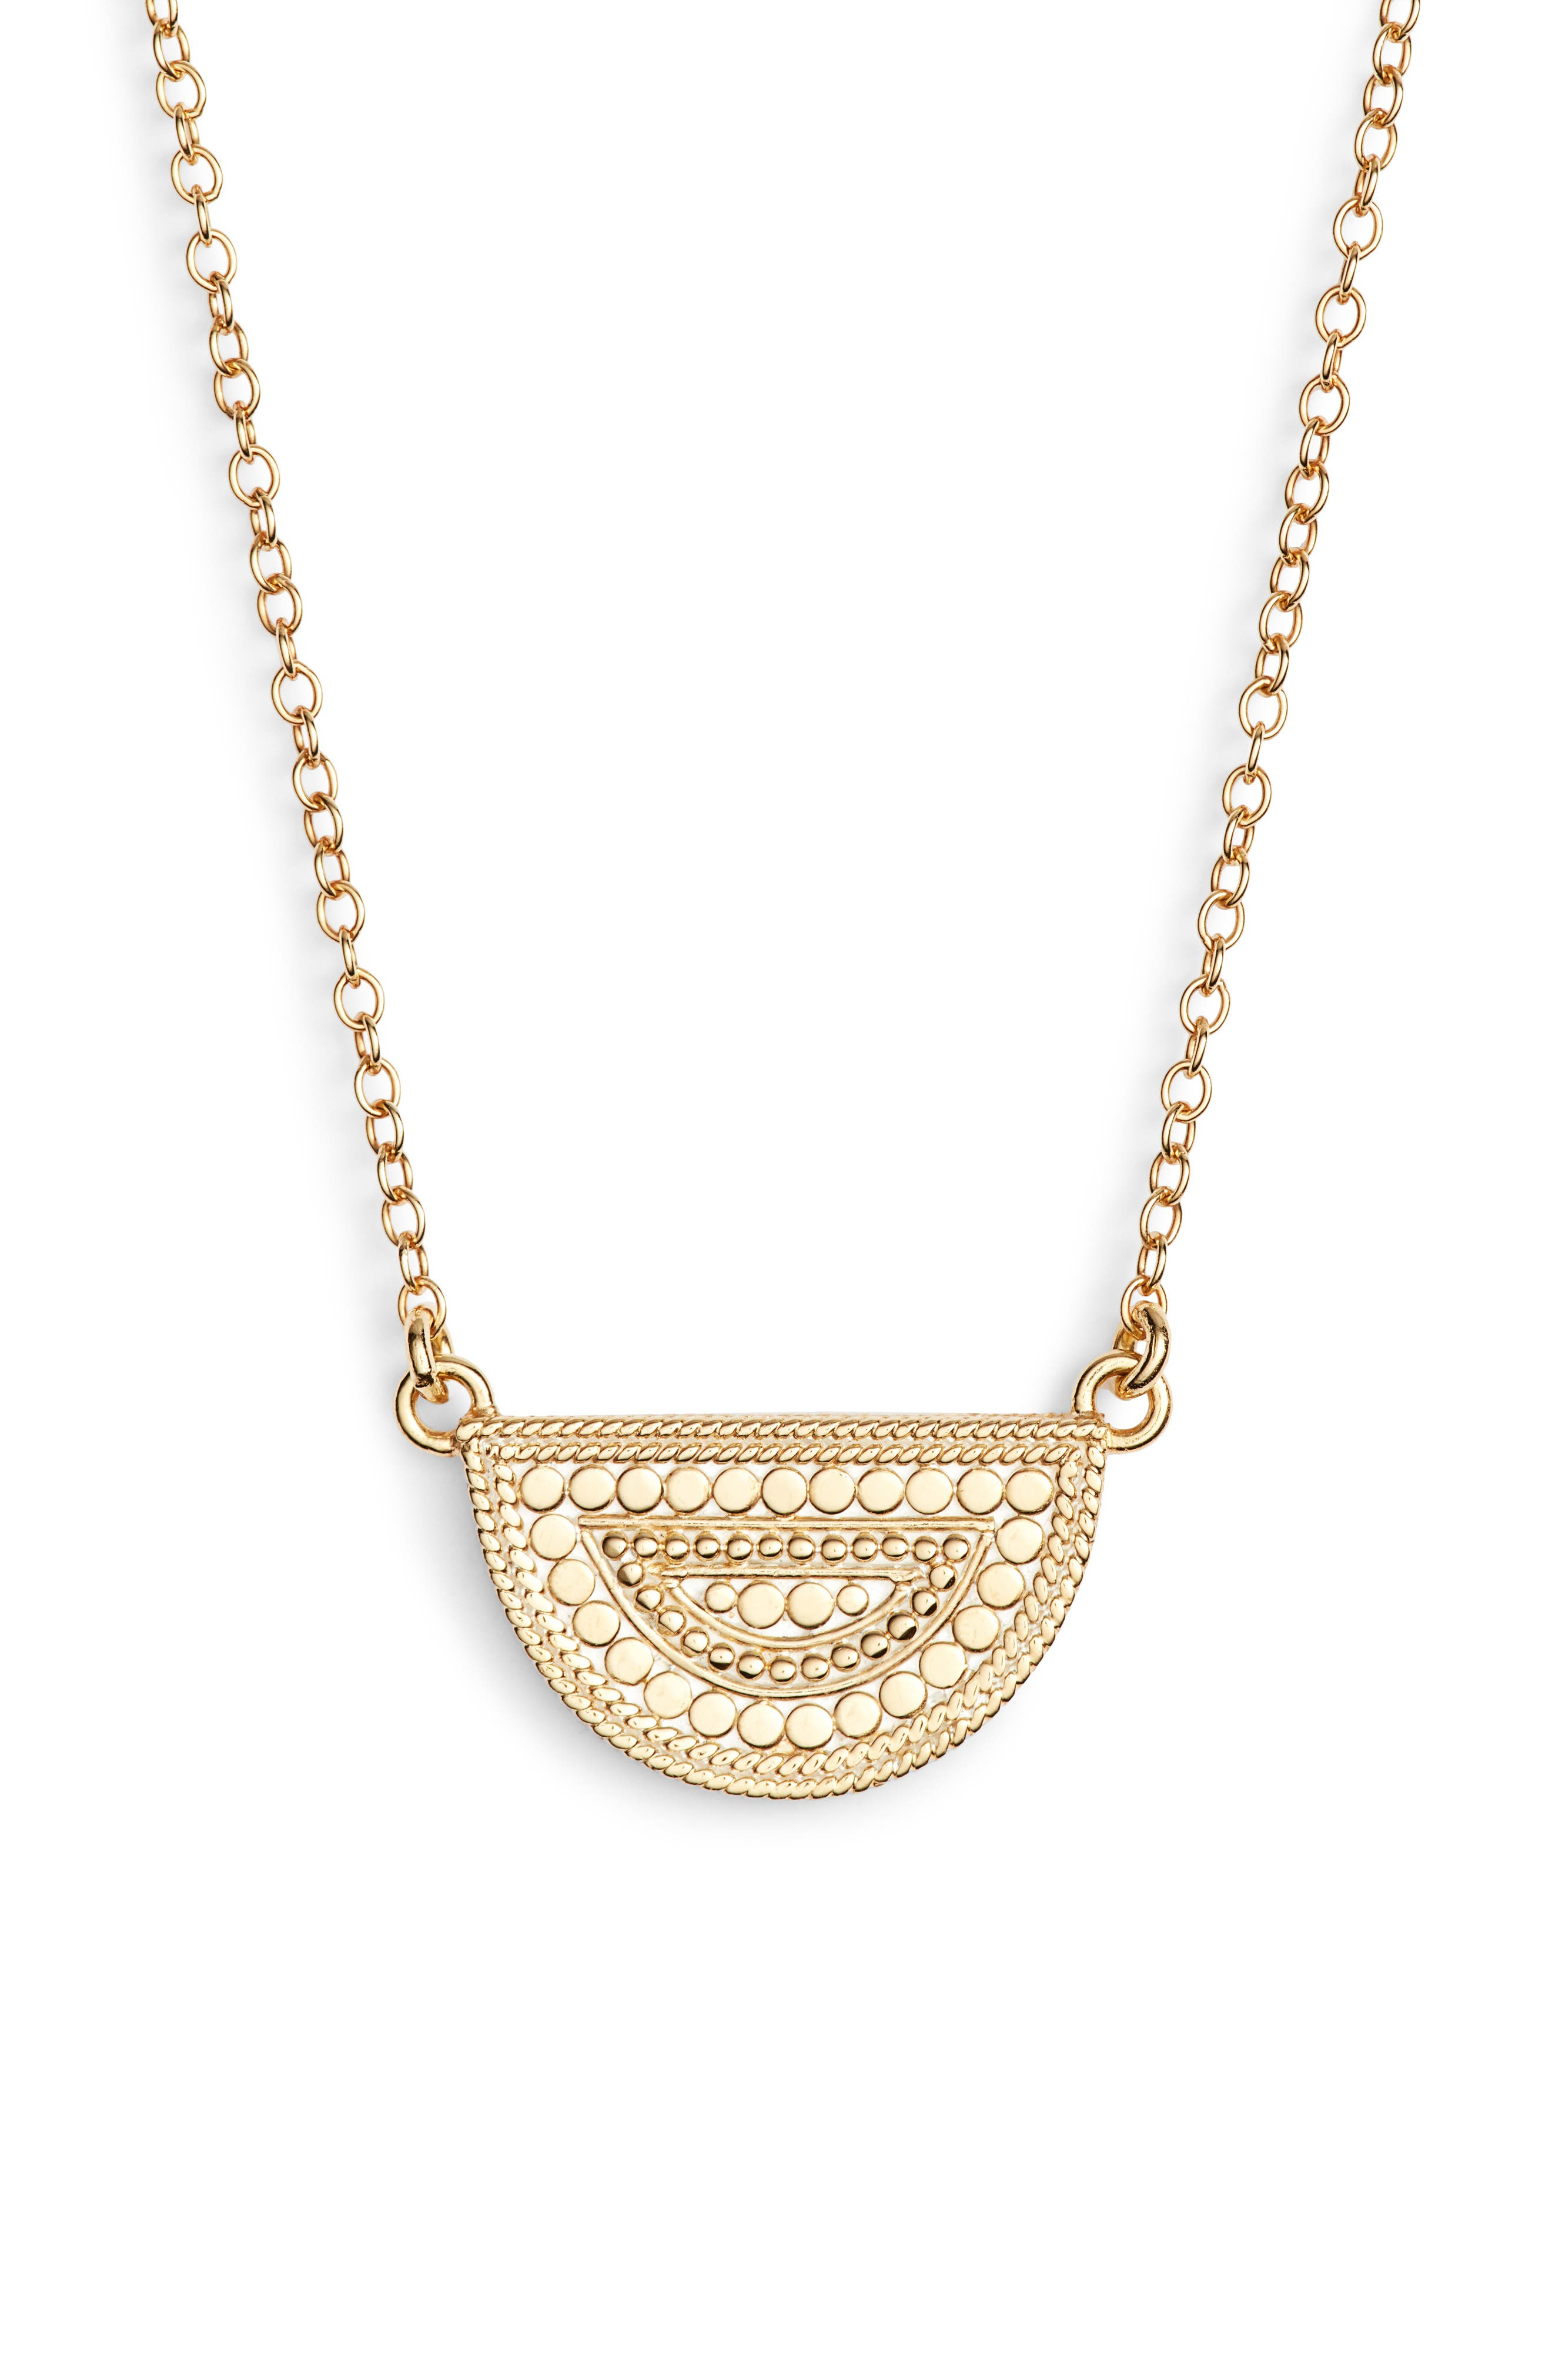 ANNA BECK Beaded Reversible Half-Moon Necklace in Gold